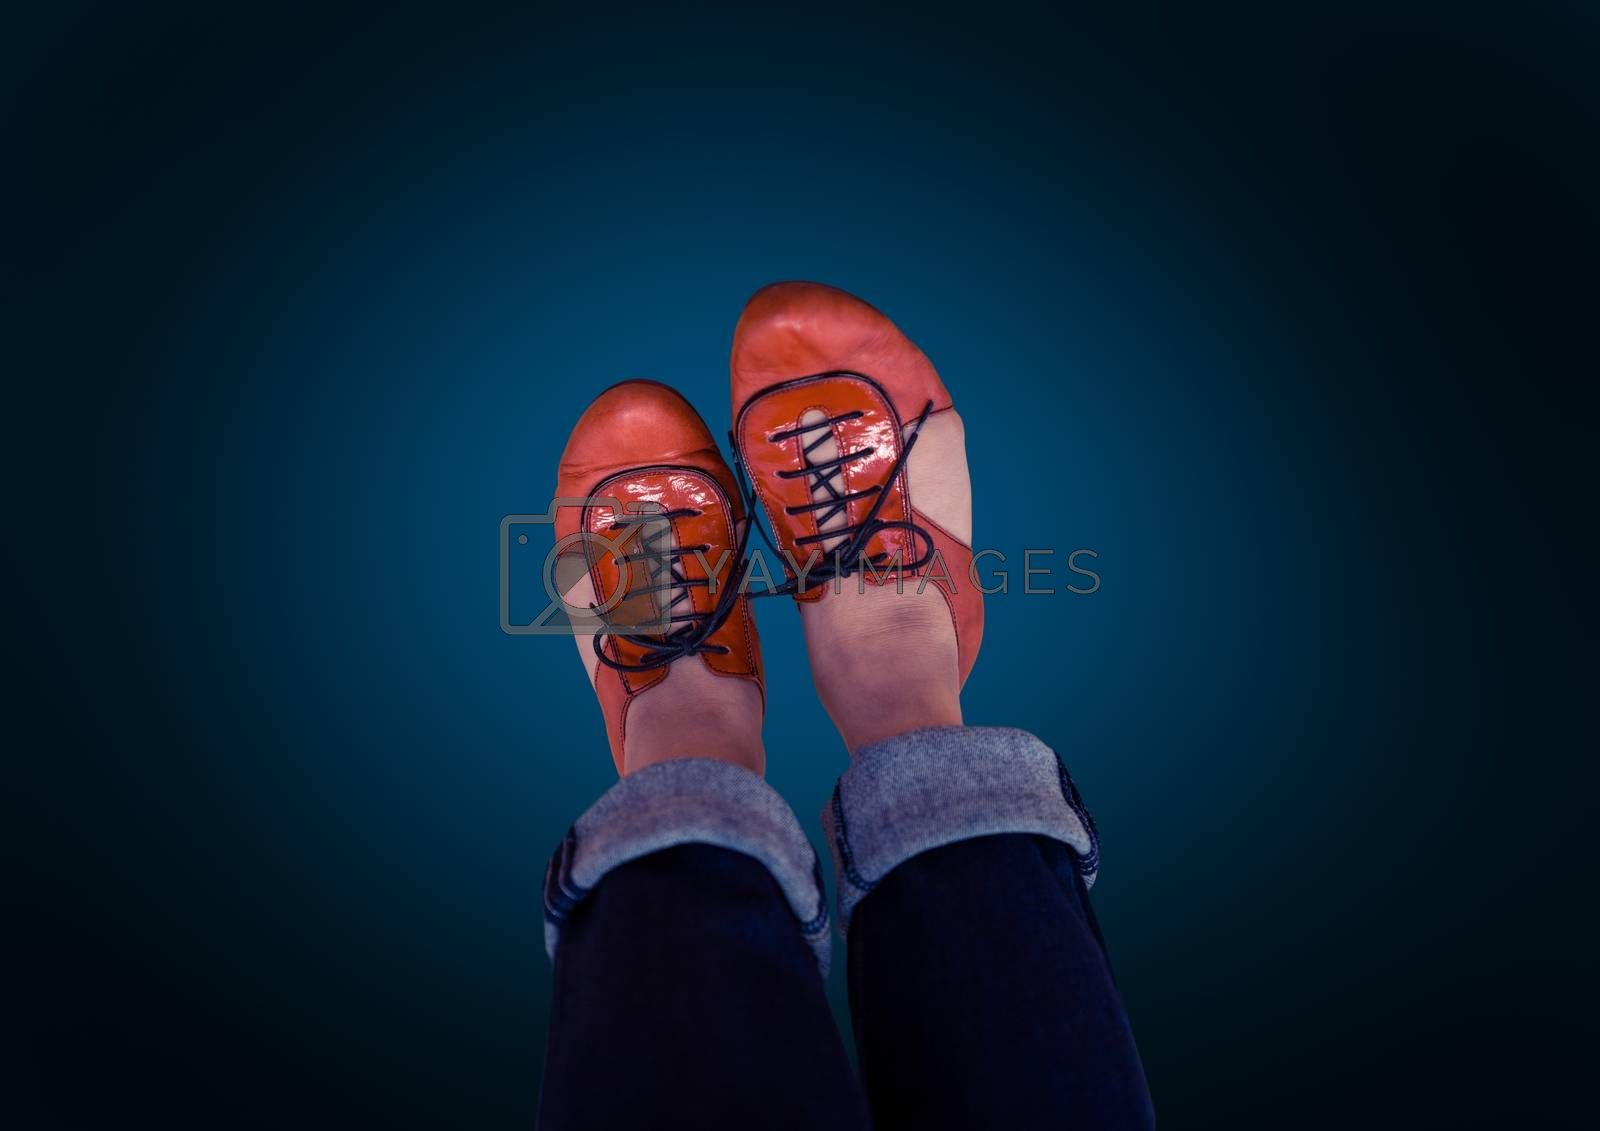 red shoes on feet with blue background by Wavebreakmedia